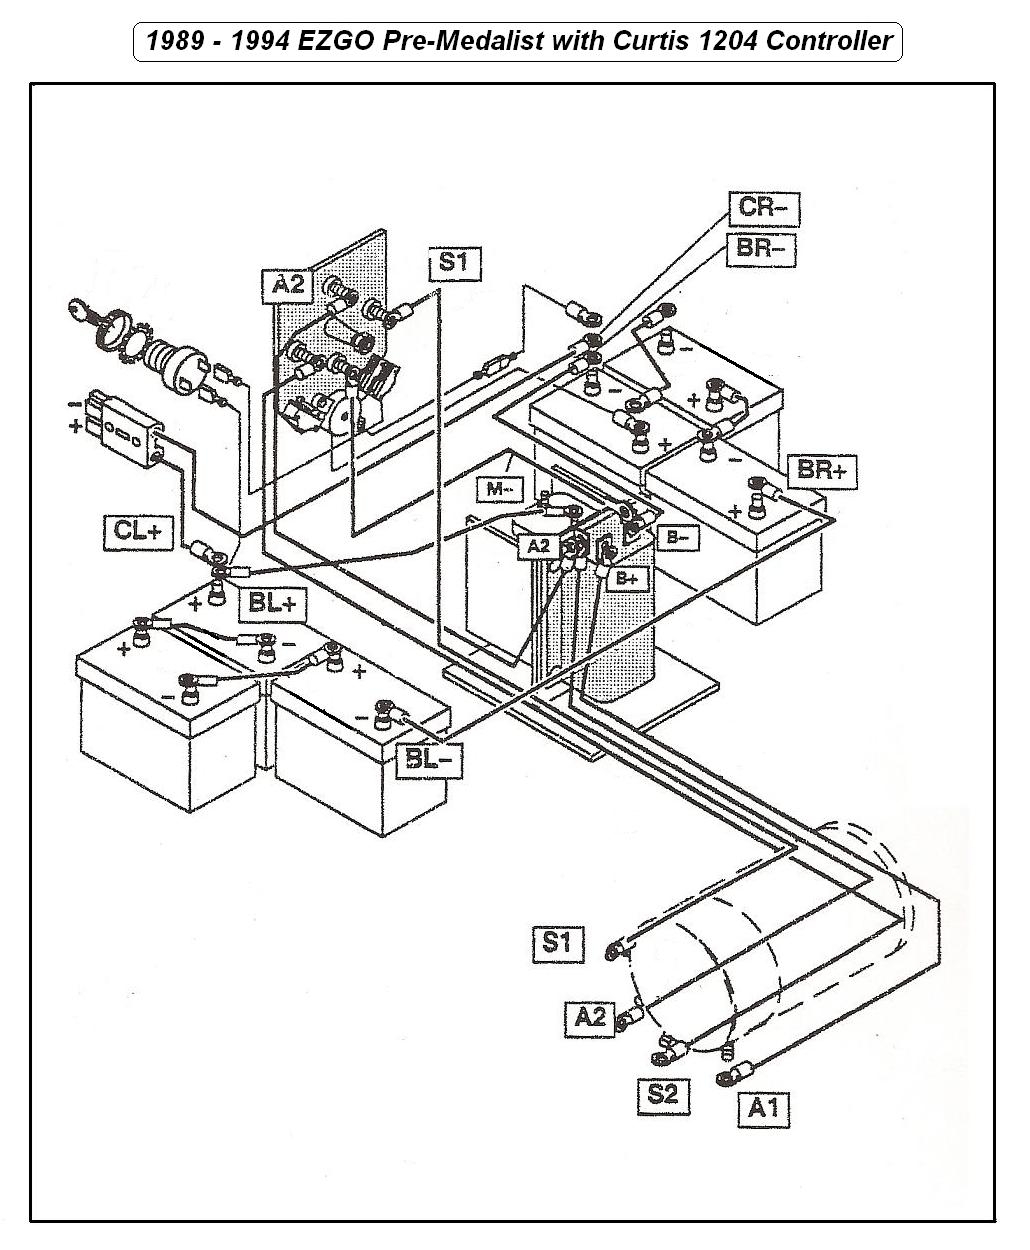 hight resolution of 36 volt ezgo wiring 1995 wiring diagram todays ezgo electric golf cart wiring diagram 36 volt ezgo wiring 1995